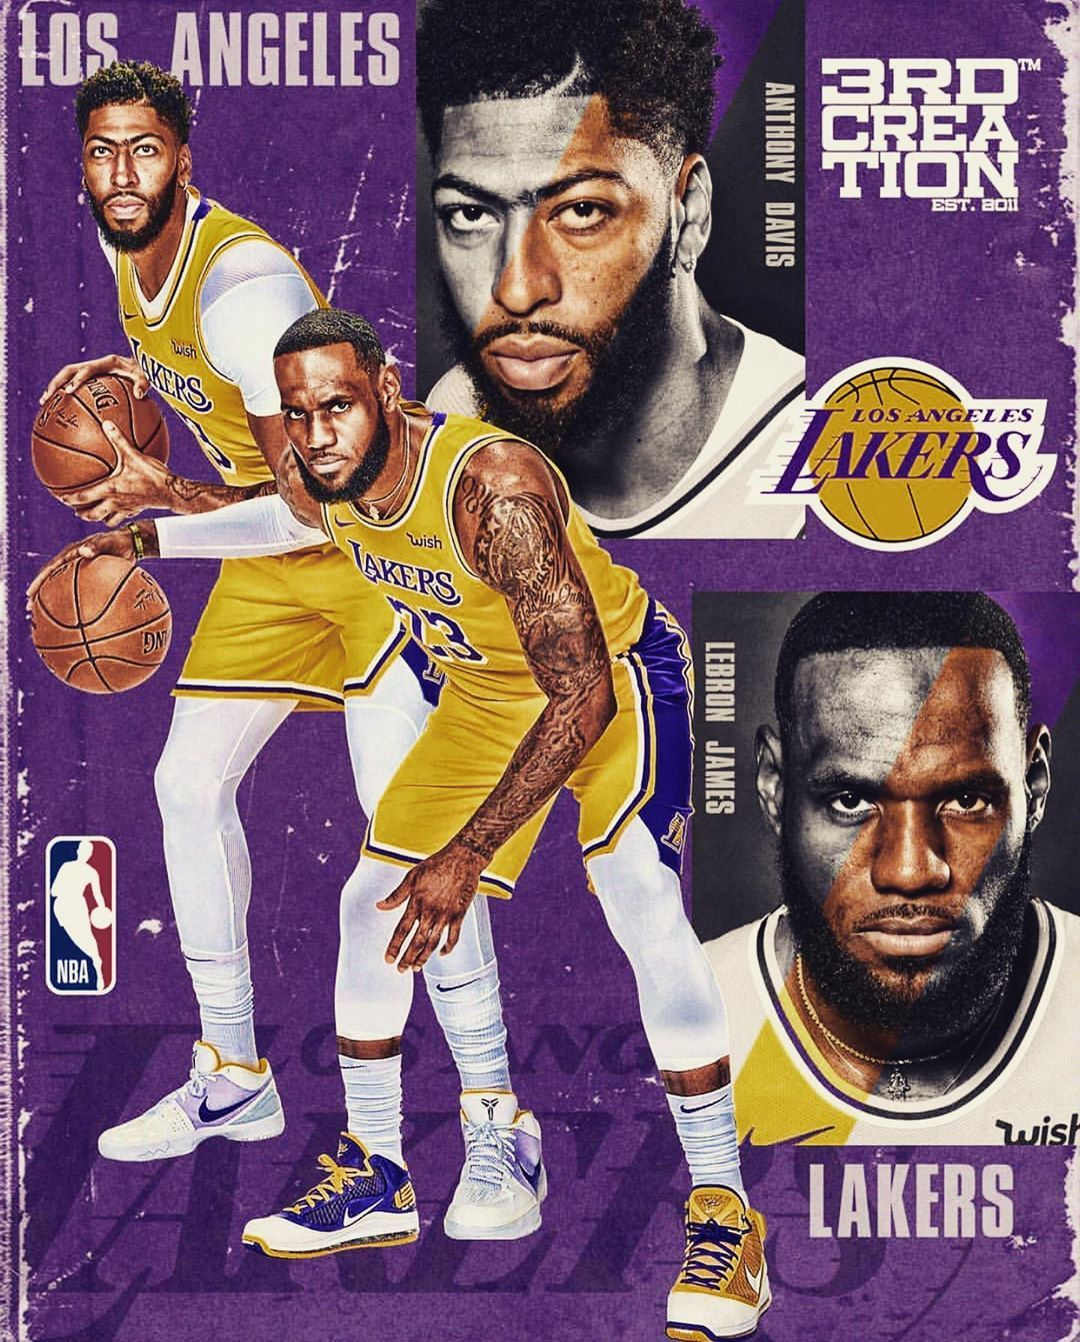 Lebron James On Instagram Do They Have The Potential To Be The Best Pick And Roll Tandem In The N Lebron James Lebron James Wallpapers Lebron James Lakers